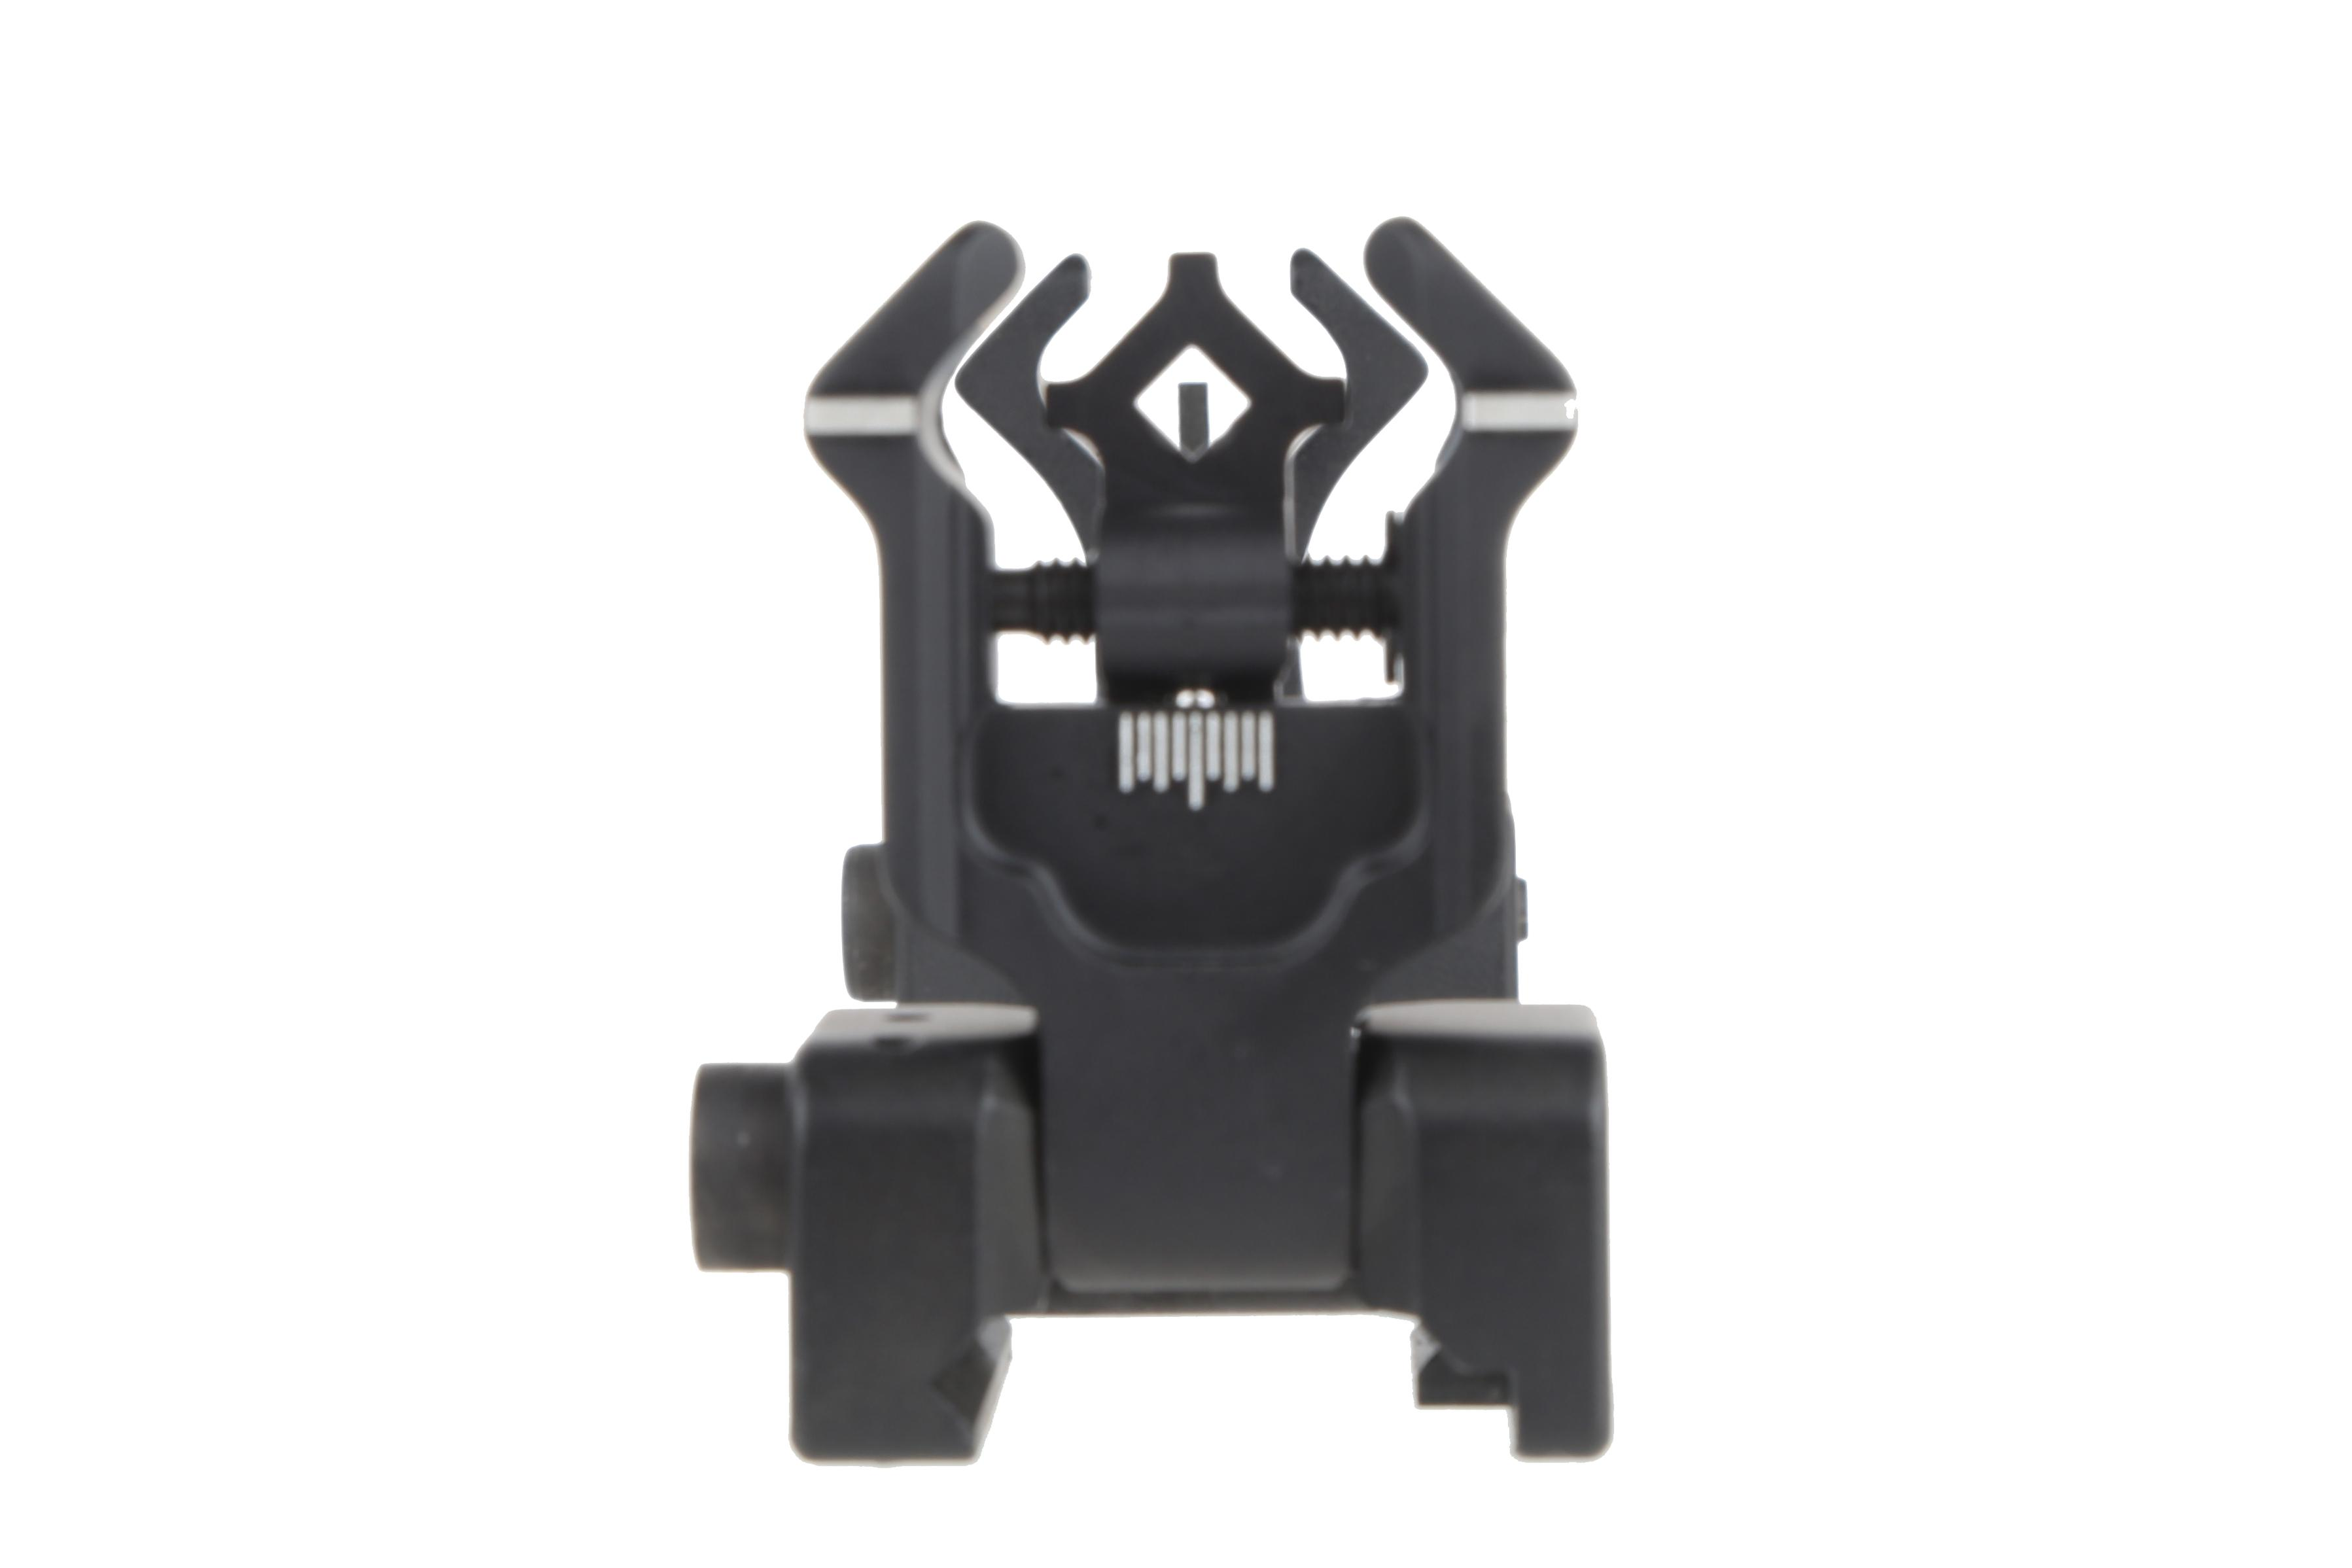 The Diamondhead Diamond integrated flip up sights offer fast target acquisition